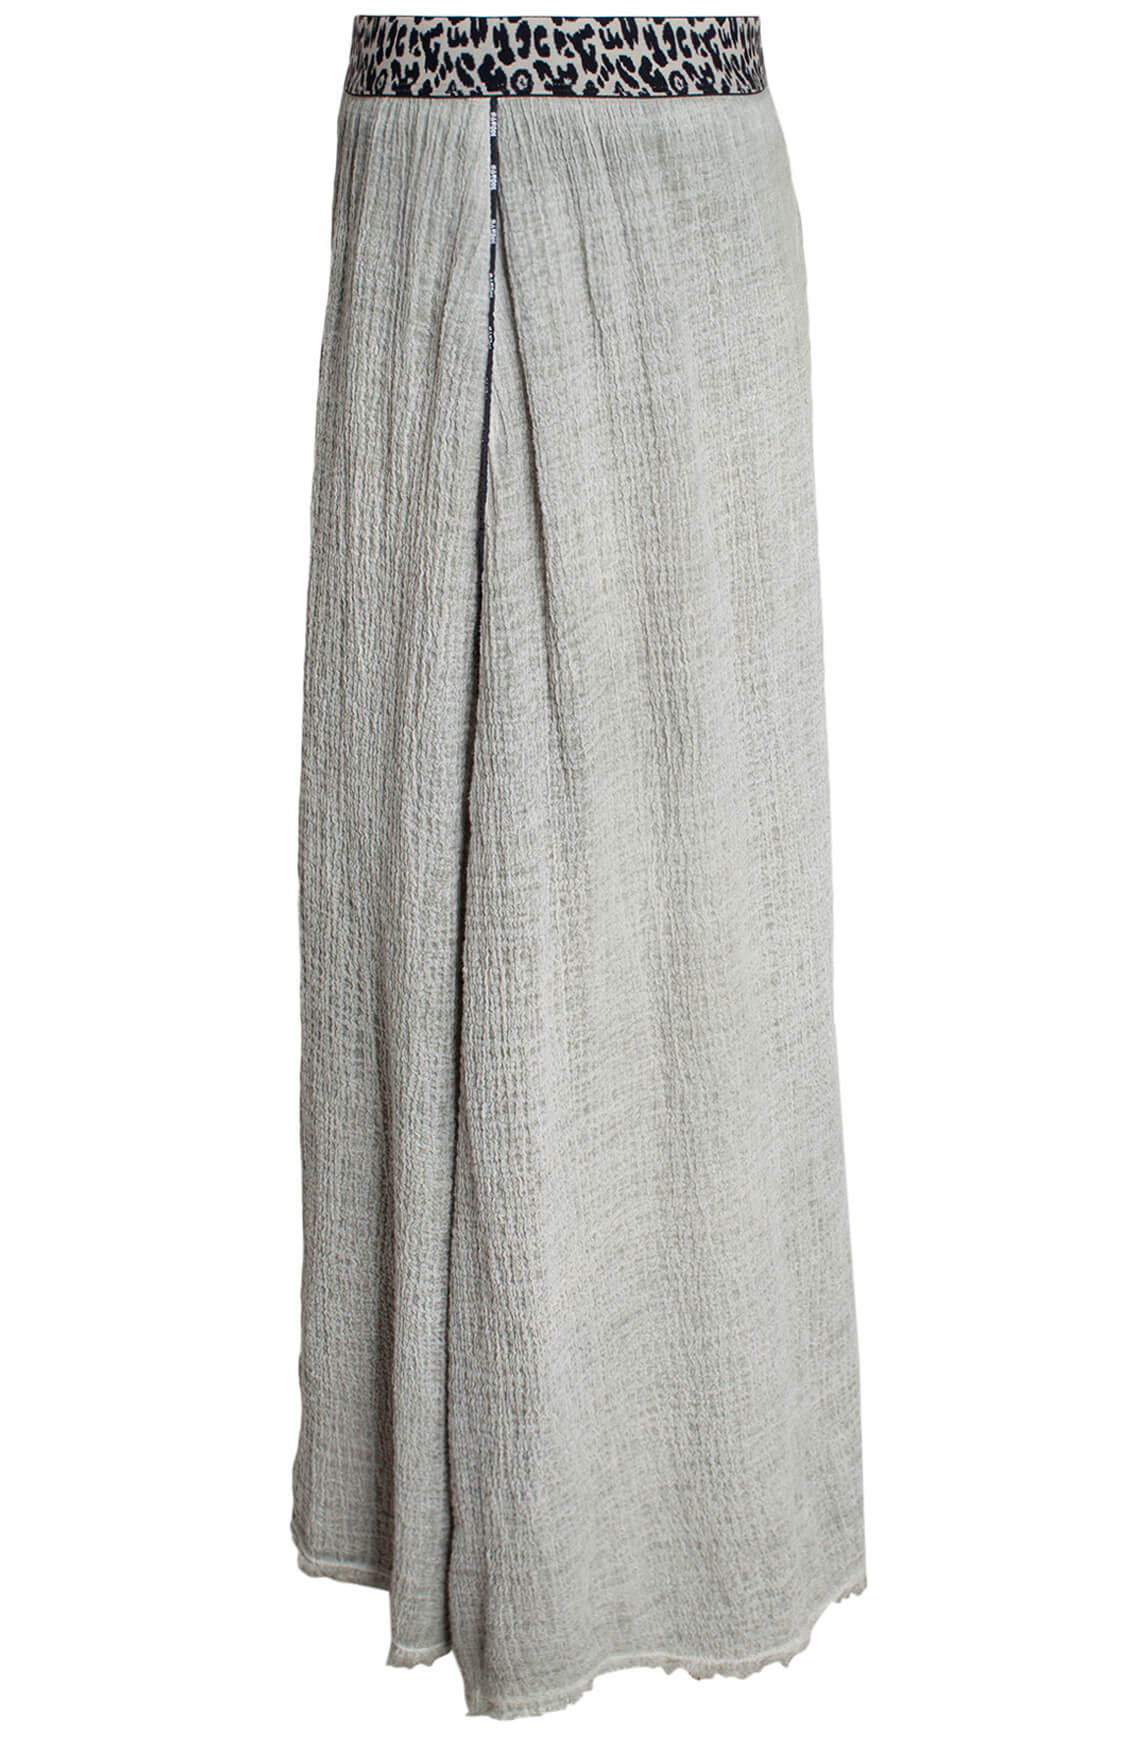 10 Days Dames Maxi rok Grijs